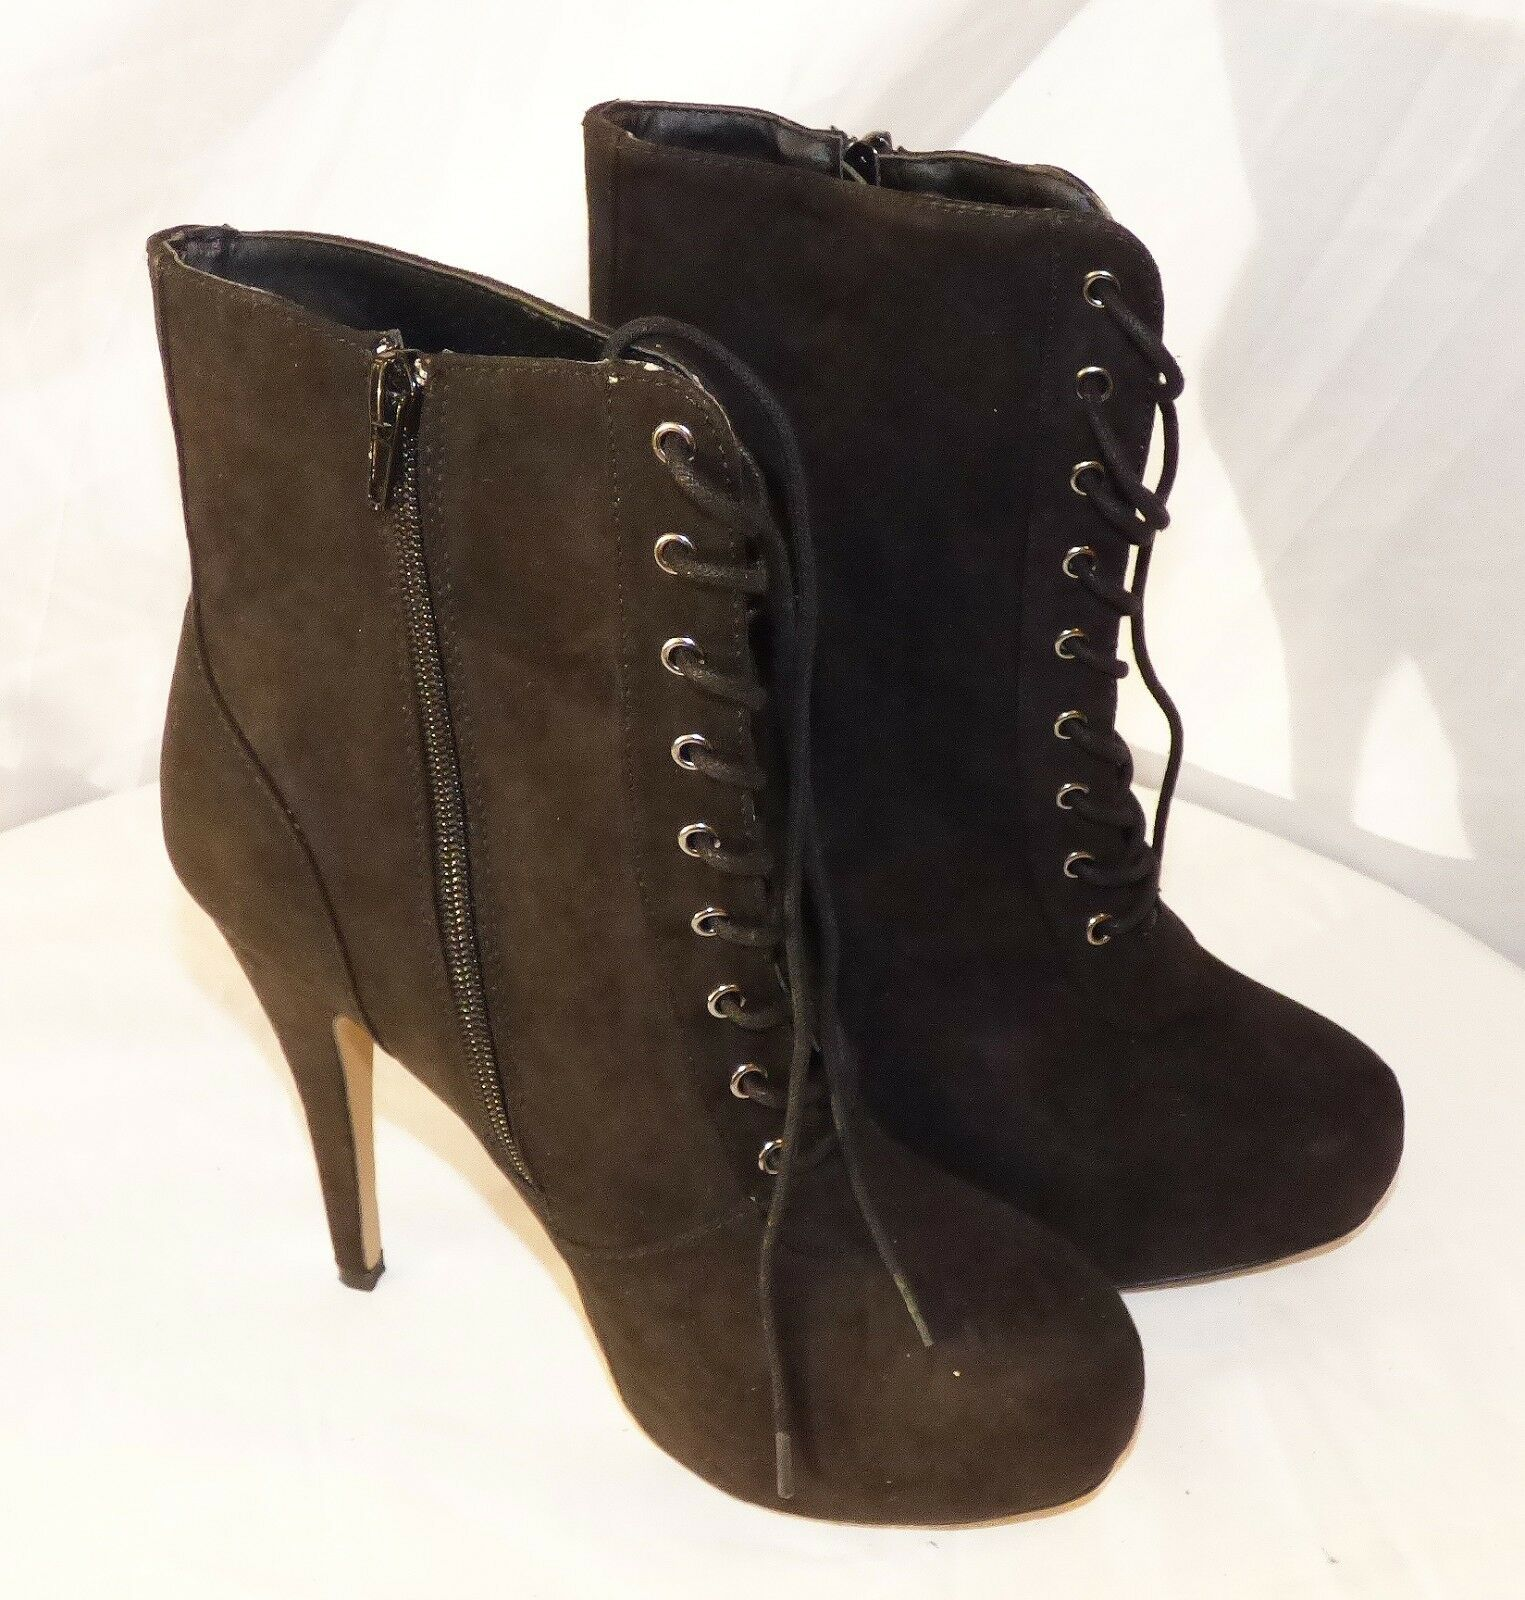 Authentic Forever 21 Leather Boots High Heel Sz 8 Very good NEW Condition